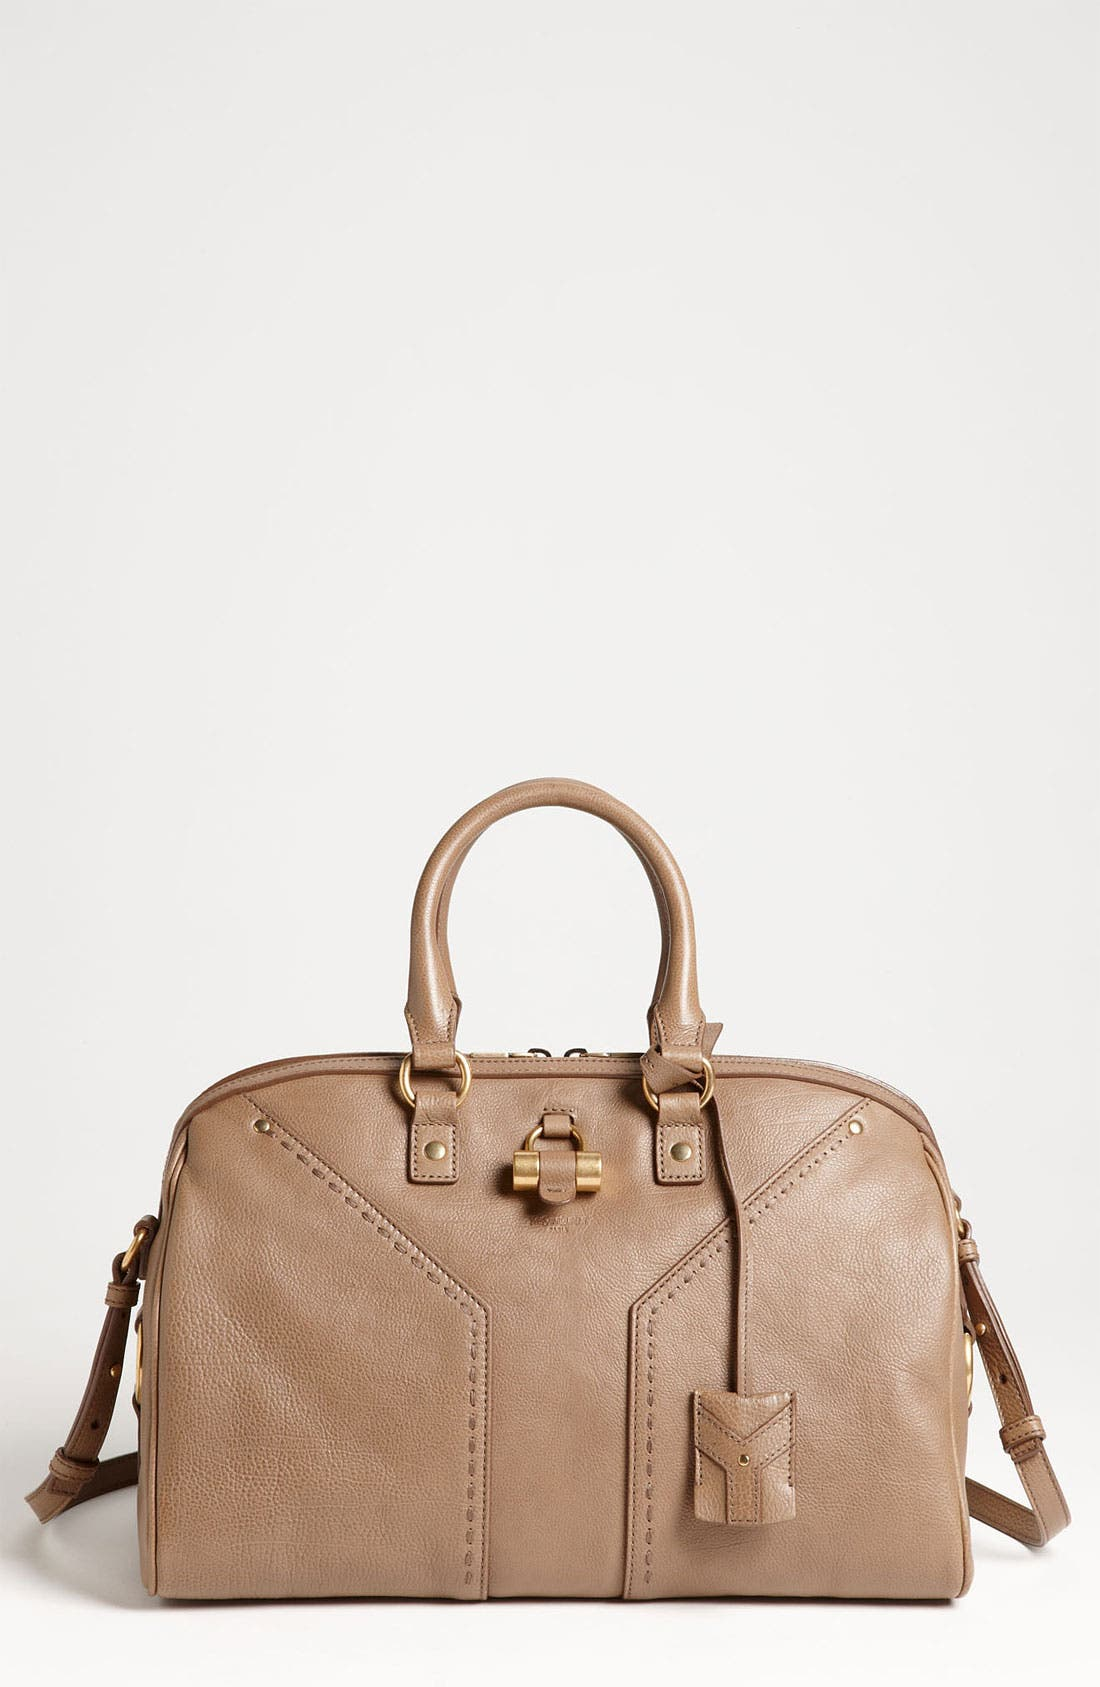 Alternate Image 1 Selected - Yves Saint Laurent 'Muse' Leather Satchel